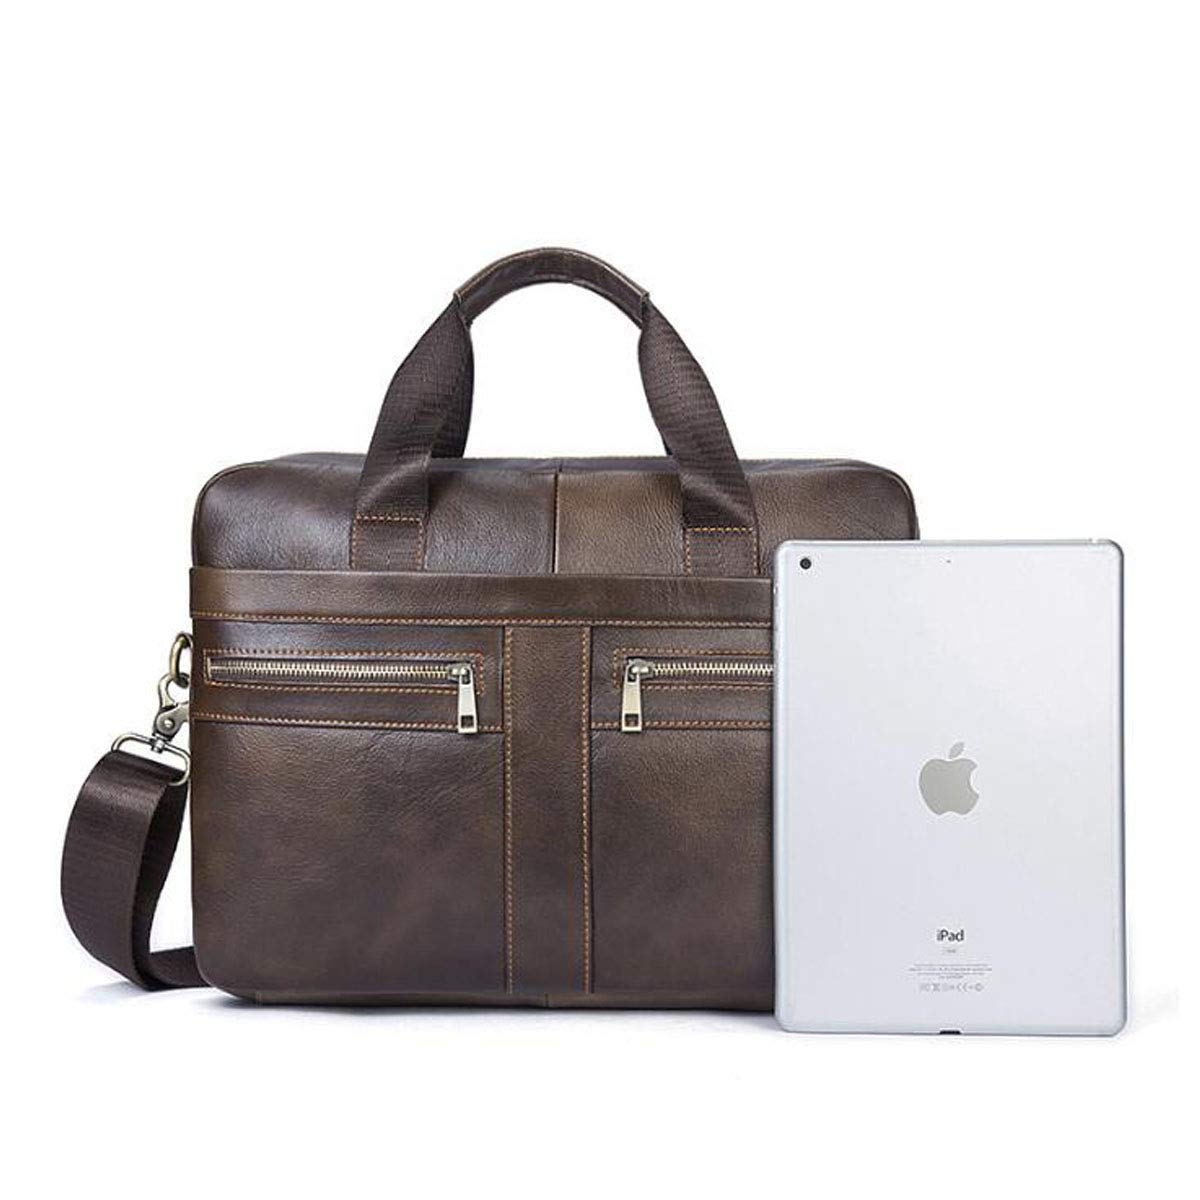 Kuqiqi Briefcase Size: 36727cm Mens Leather Handbag Color : Brown Short-Distance Travel Bag